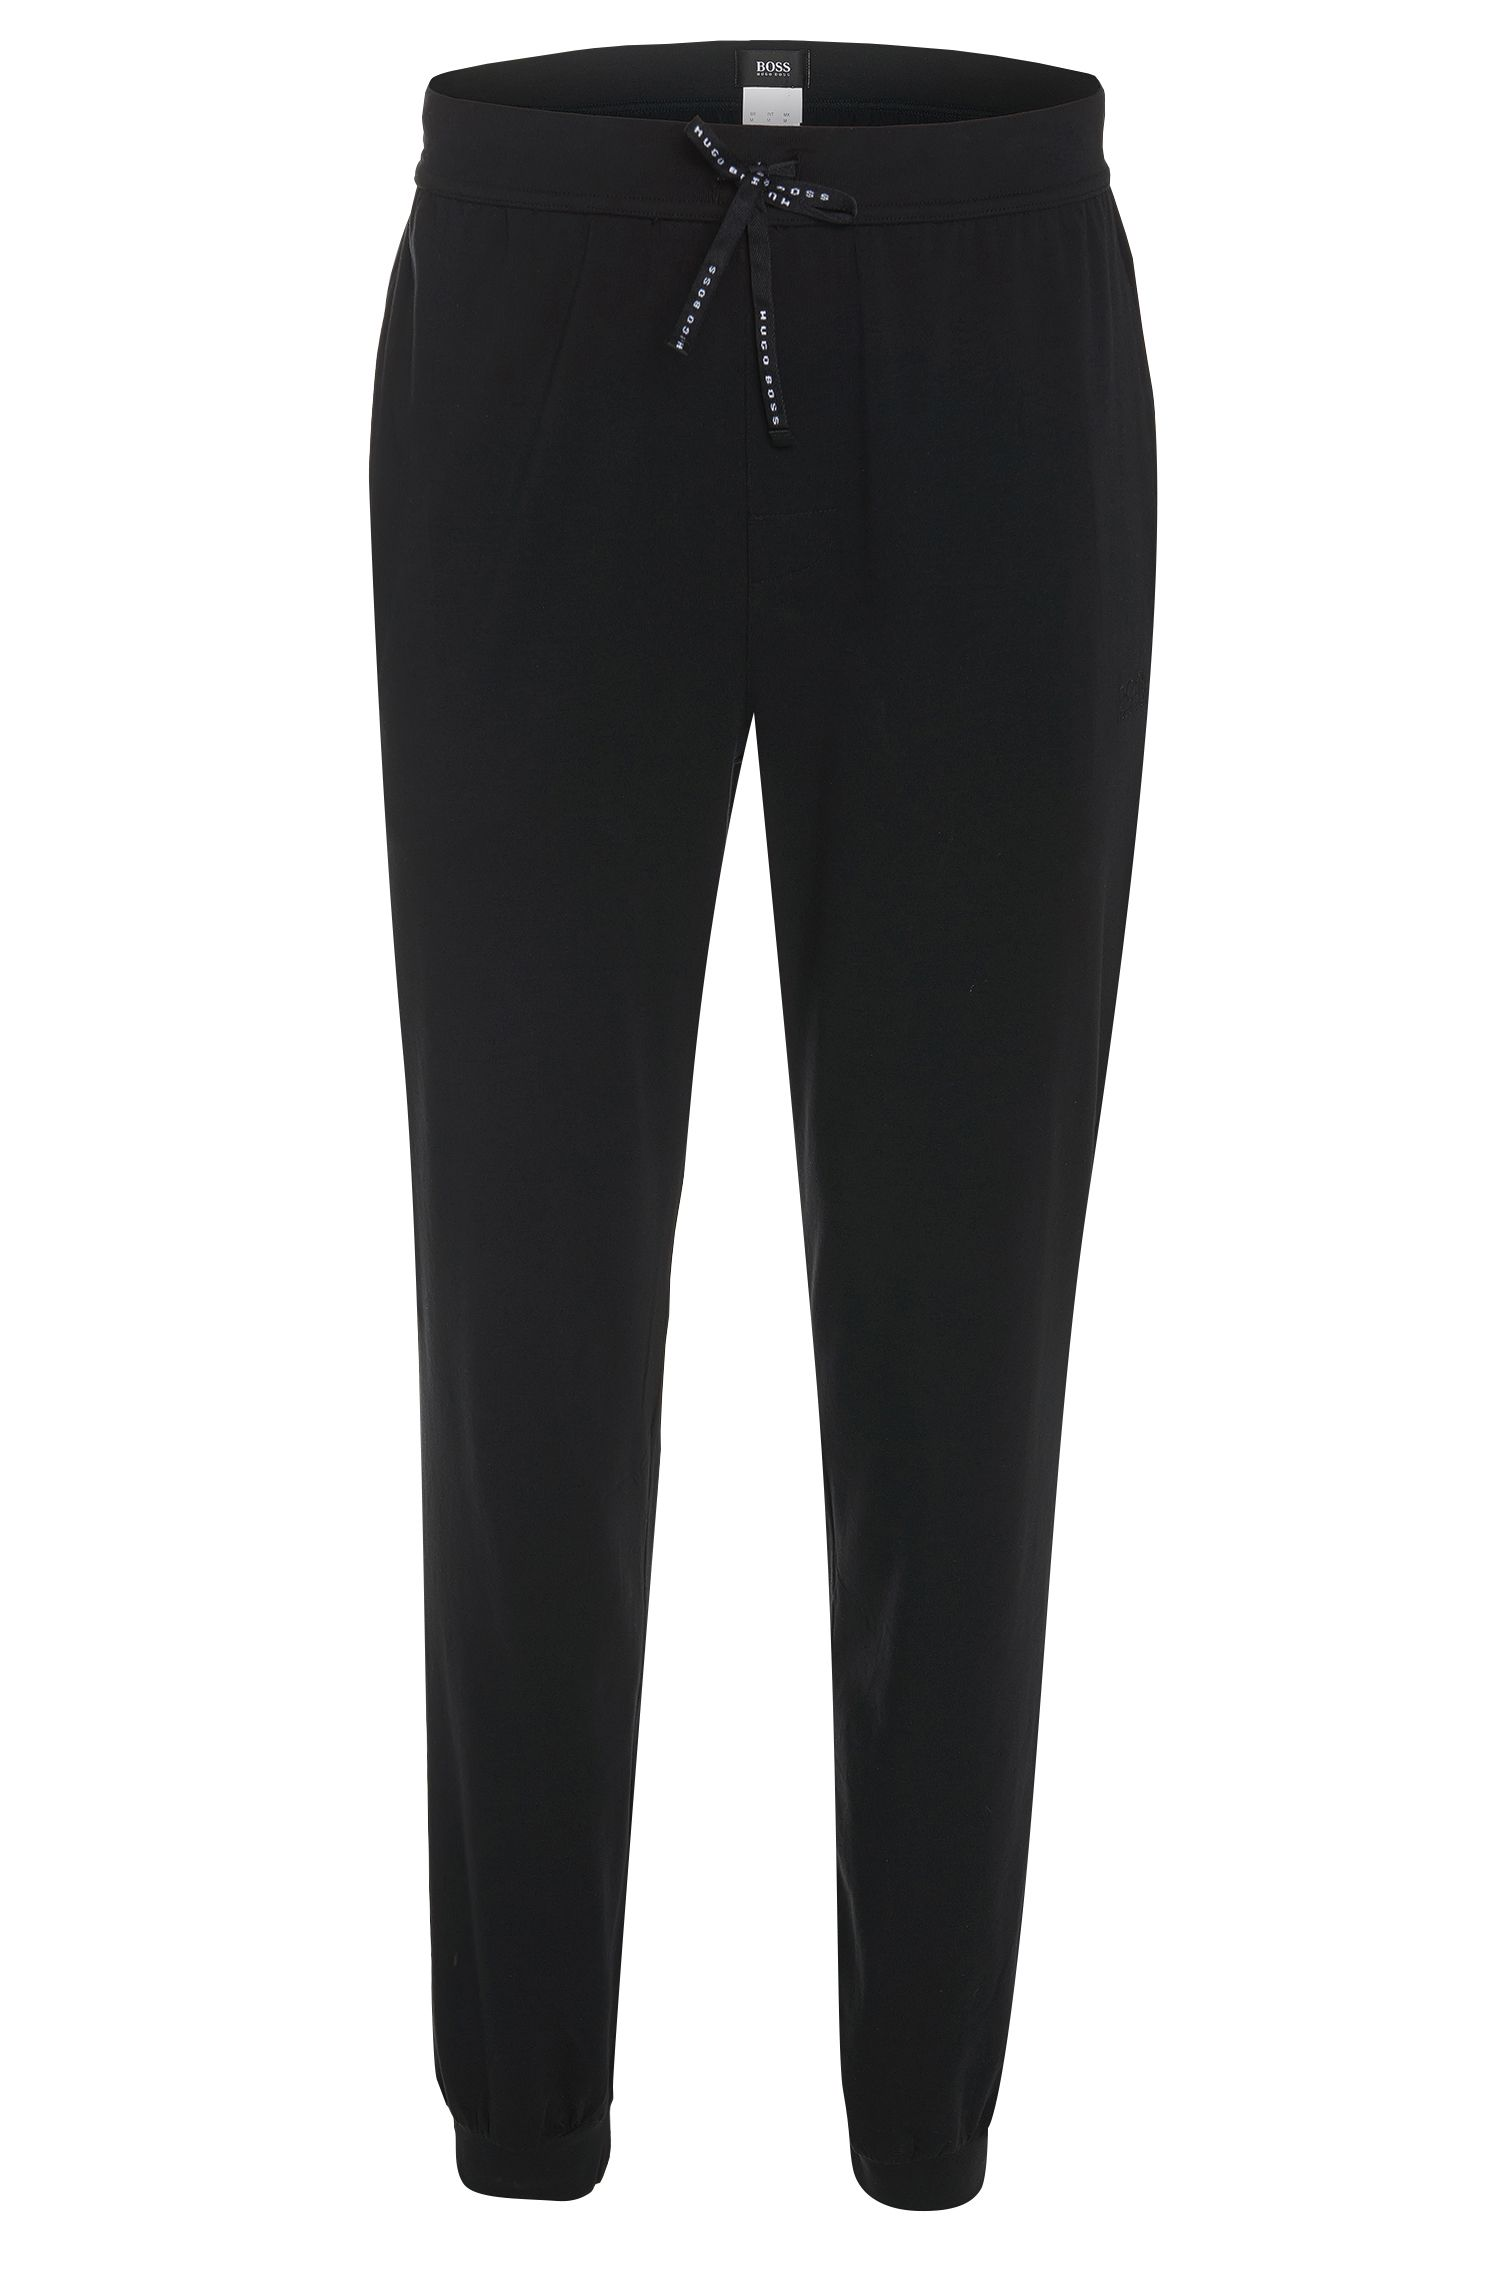 'Long Pant CW Cuffs' | Stretch Cotton Jersey Lounge Pants